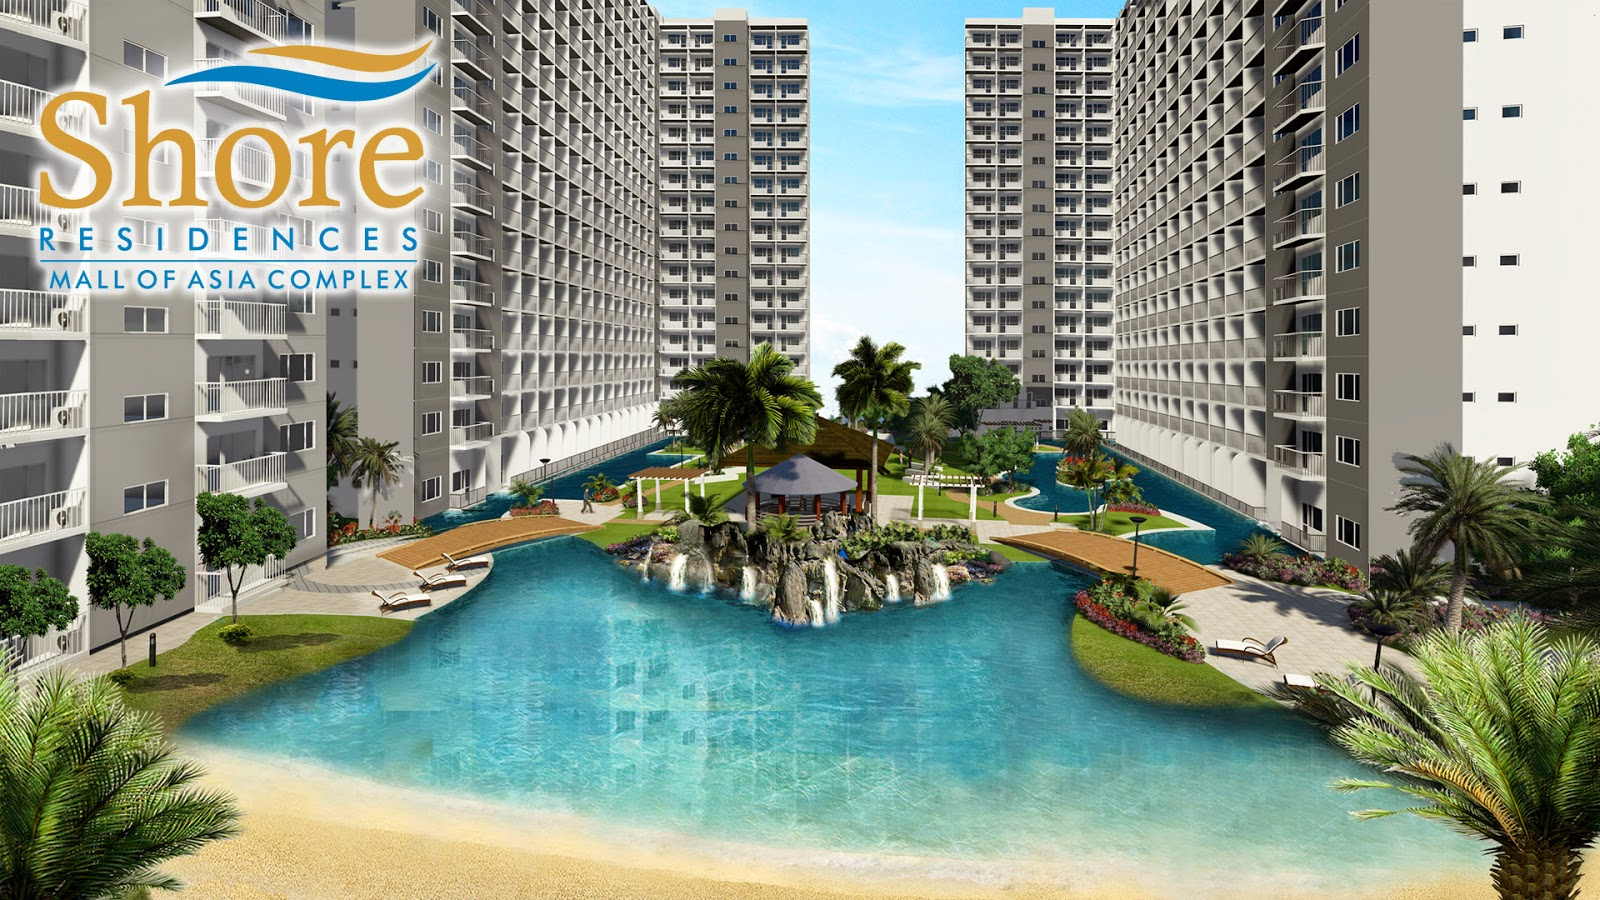 Tips for Buying a Condo in the Philippines